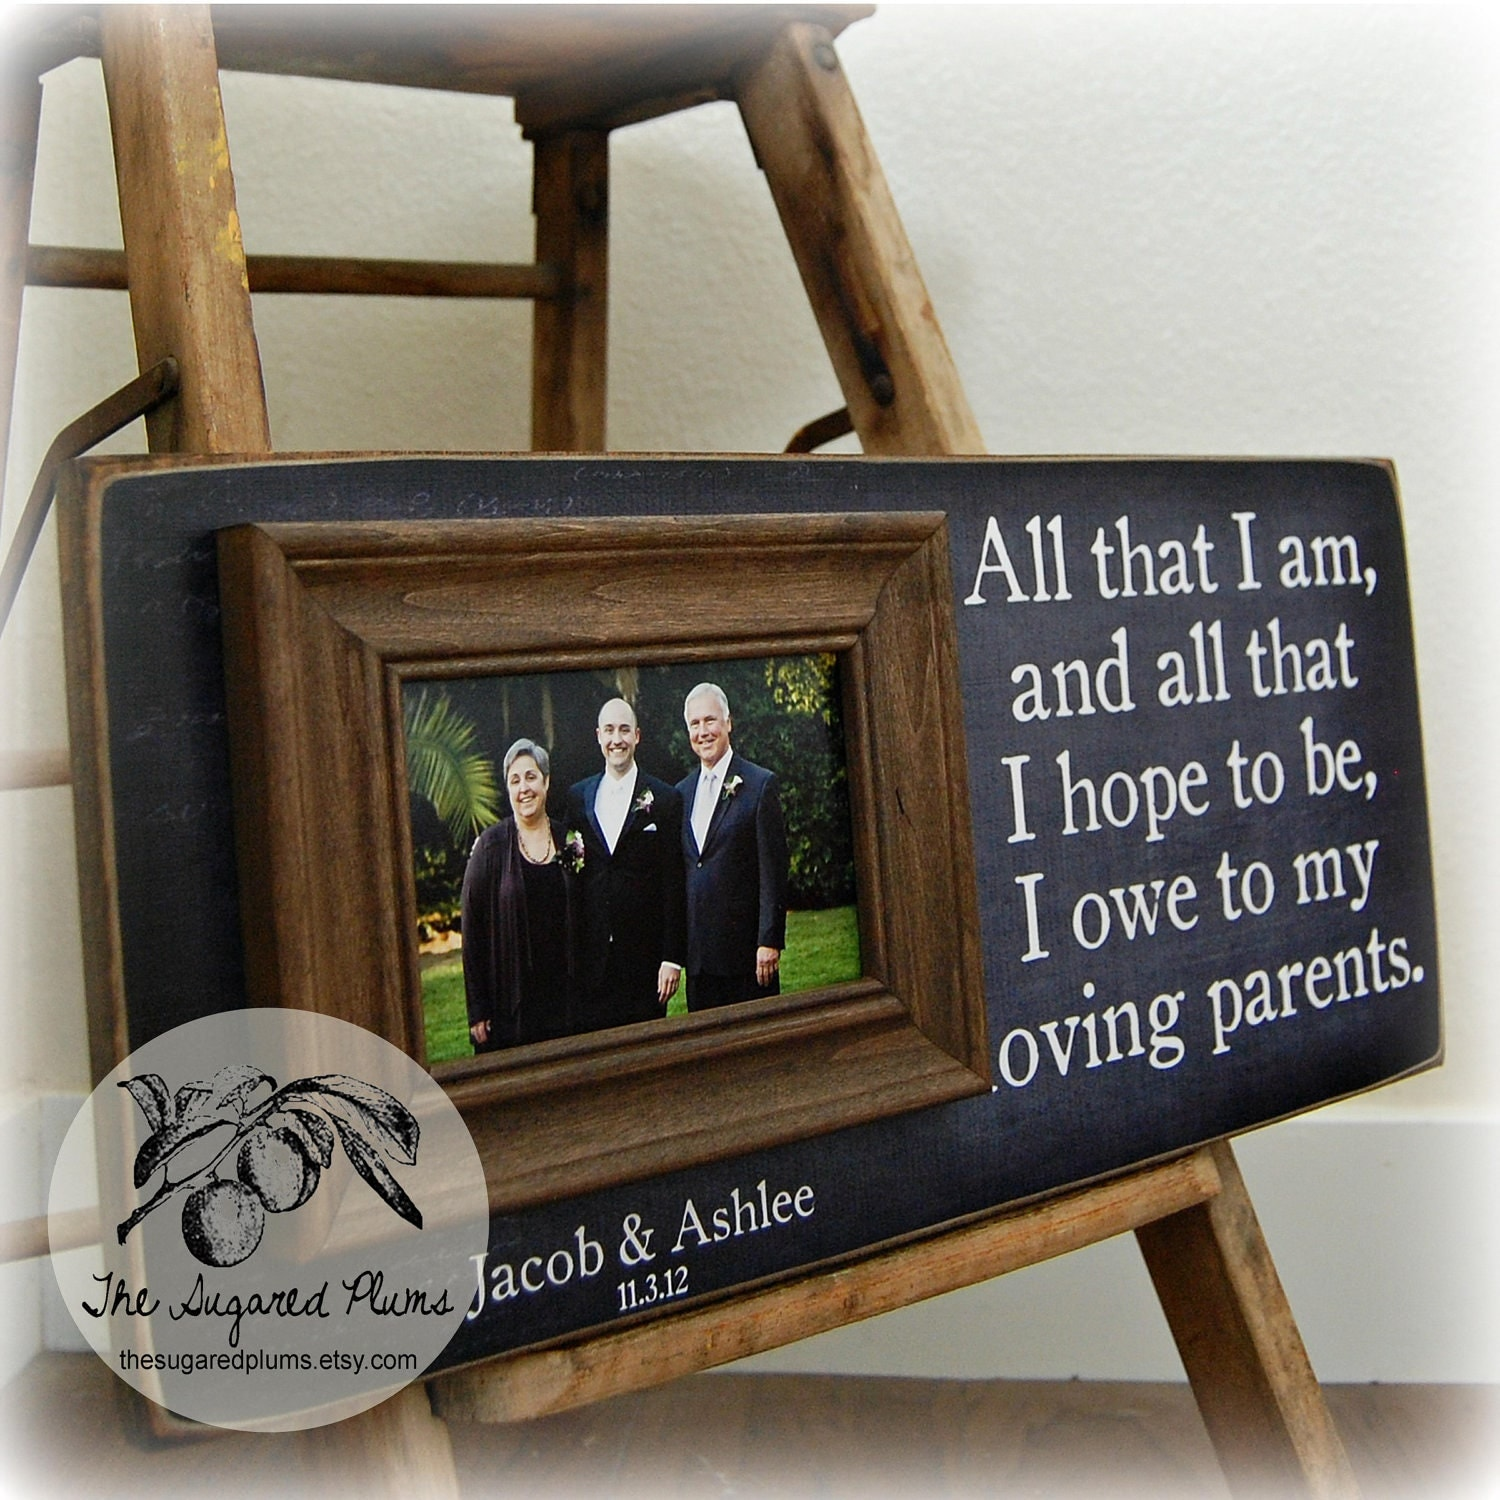 Personalized Wedding Picture Frames For Parents : Parents Wedding Gift Personalized Picture Frame by thesugaredplums